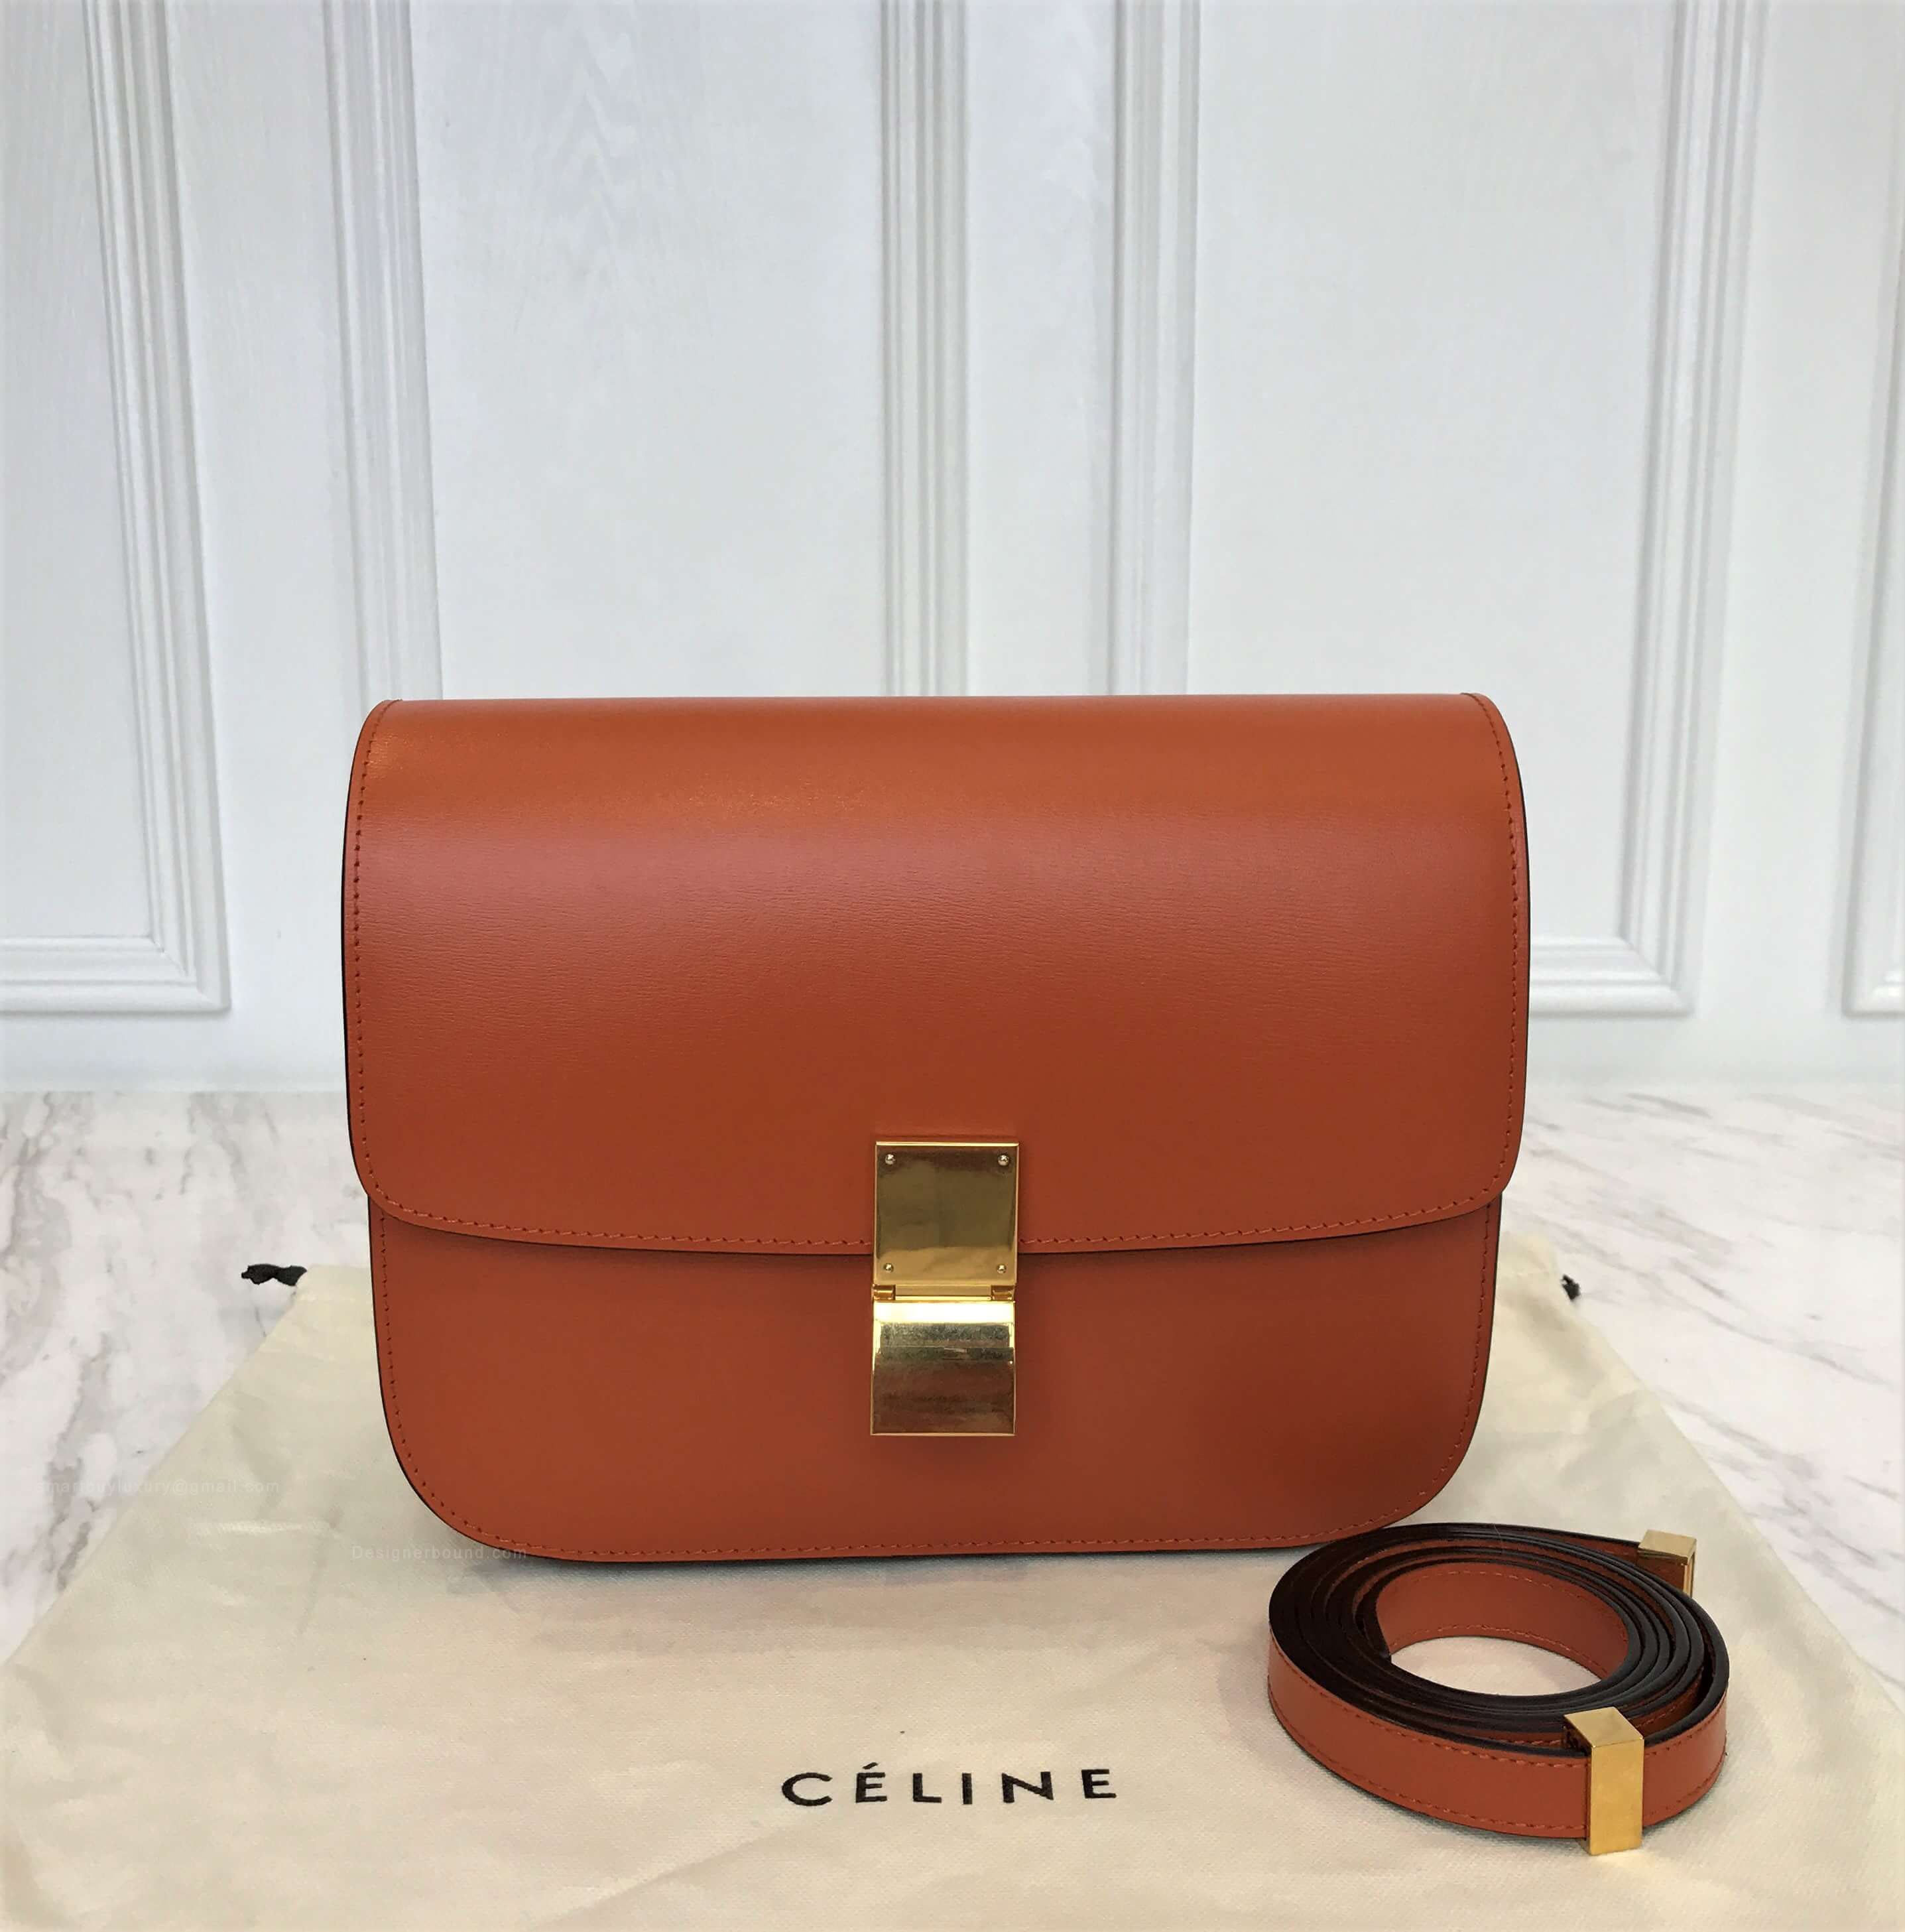 Celine Classic Box Bag Medium in Tawny Liege Calfskin